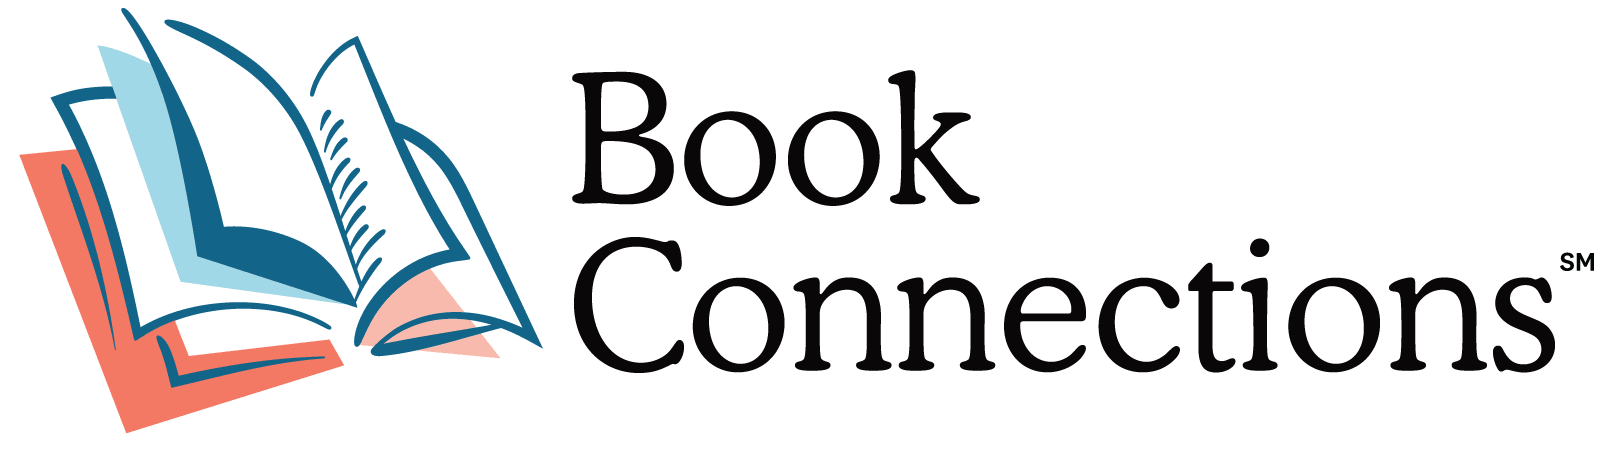 book-connections_logo